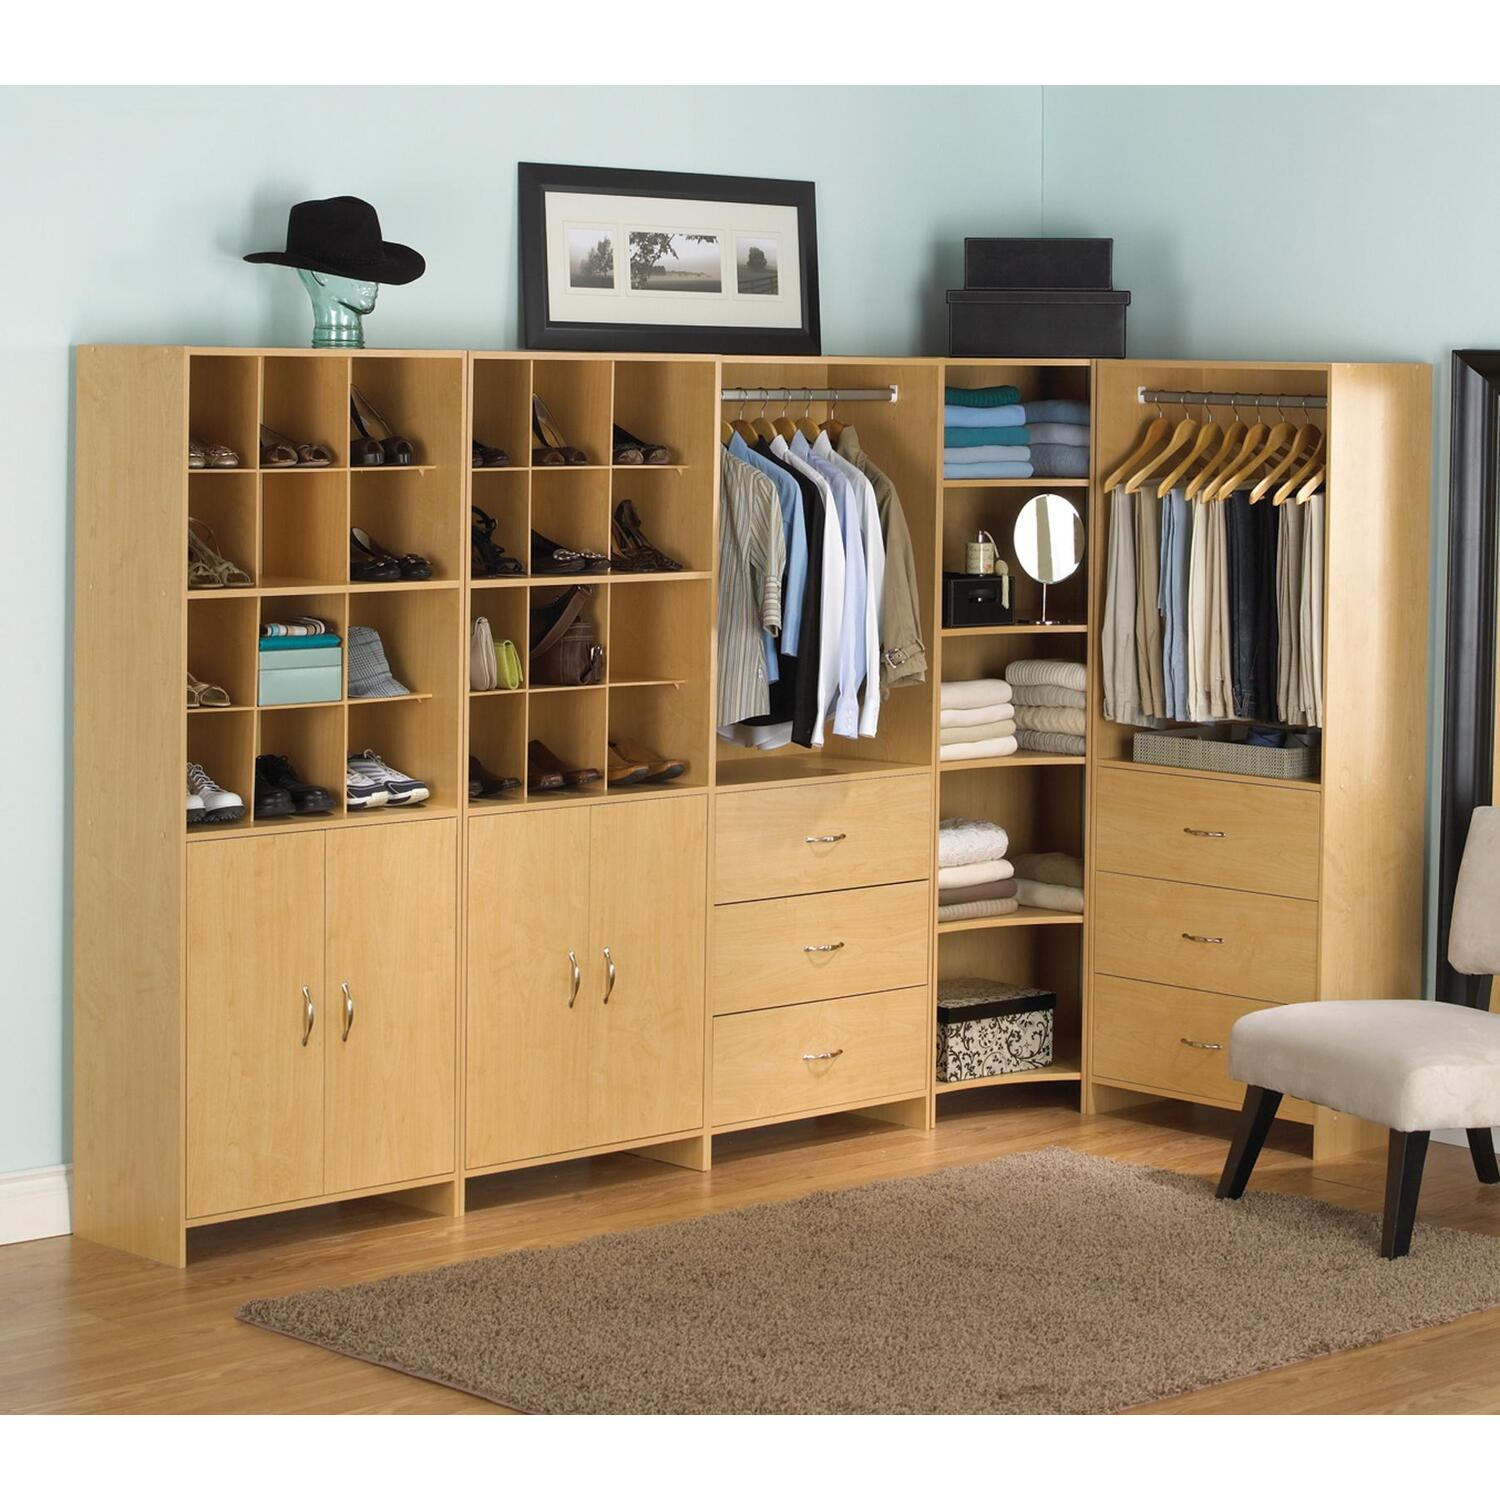 set as brown clothing hanging slanted open personal shelving for popular well drawers space admirable granite with tower racks combined storage unit table plus wooden ideas also towel top walk island featuring square and in shoes closet